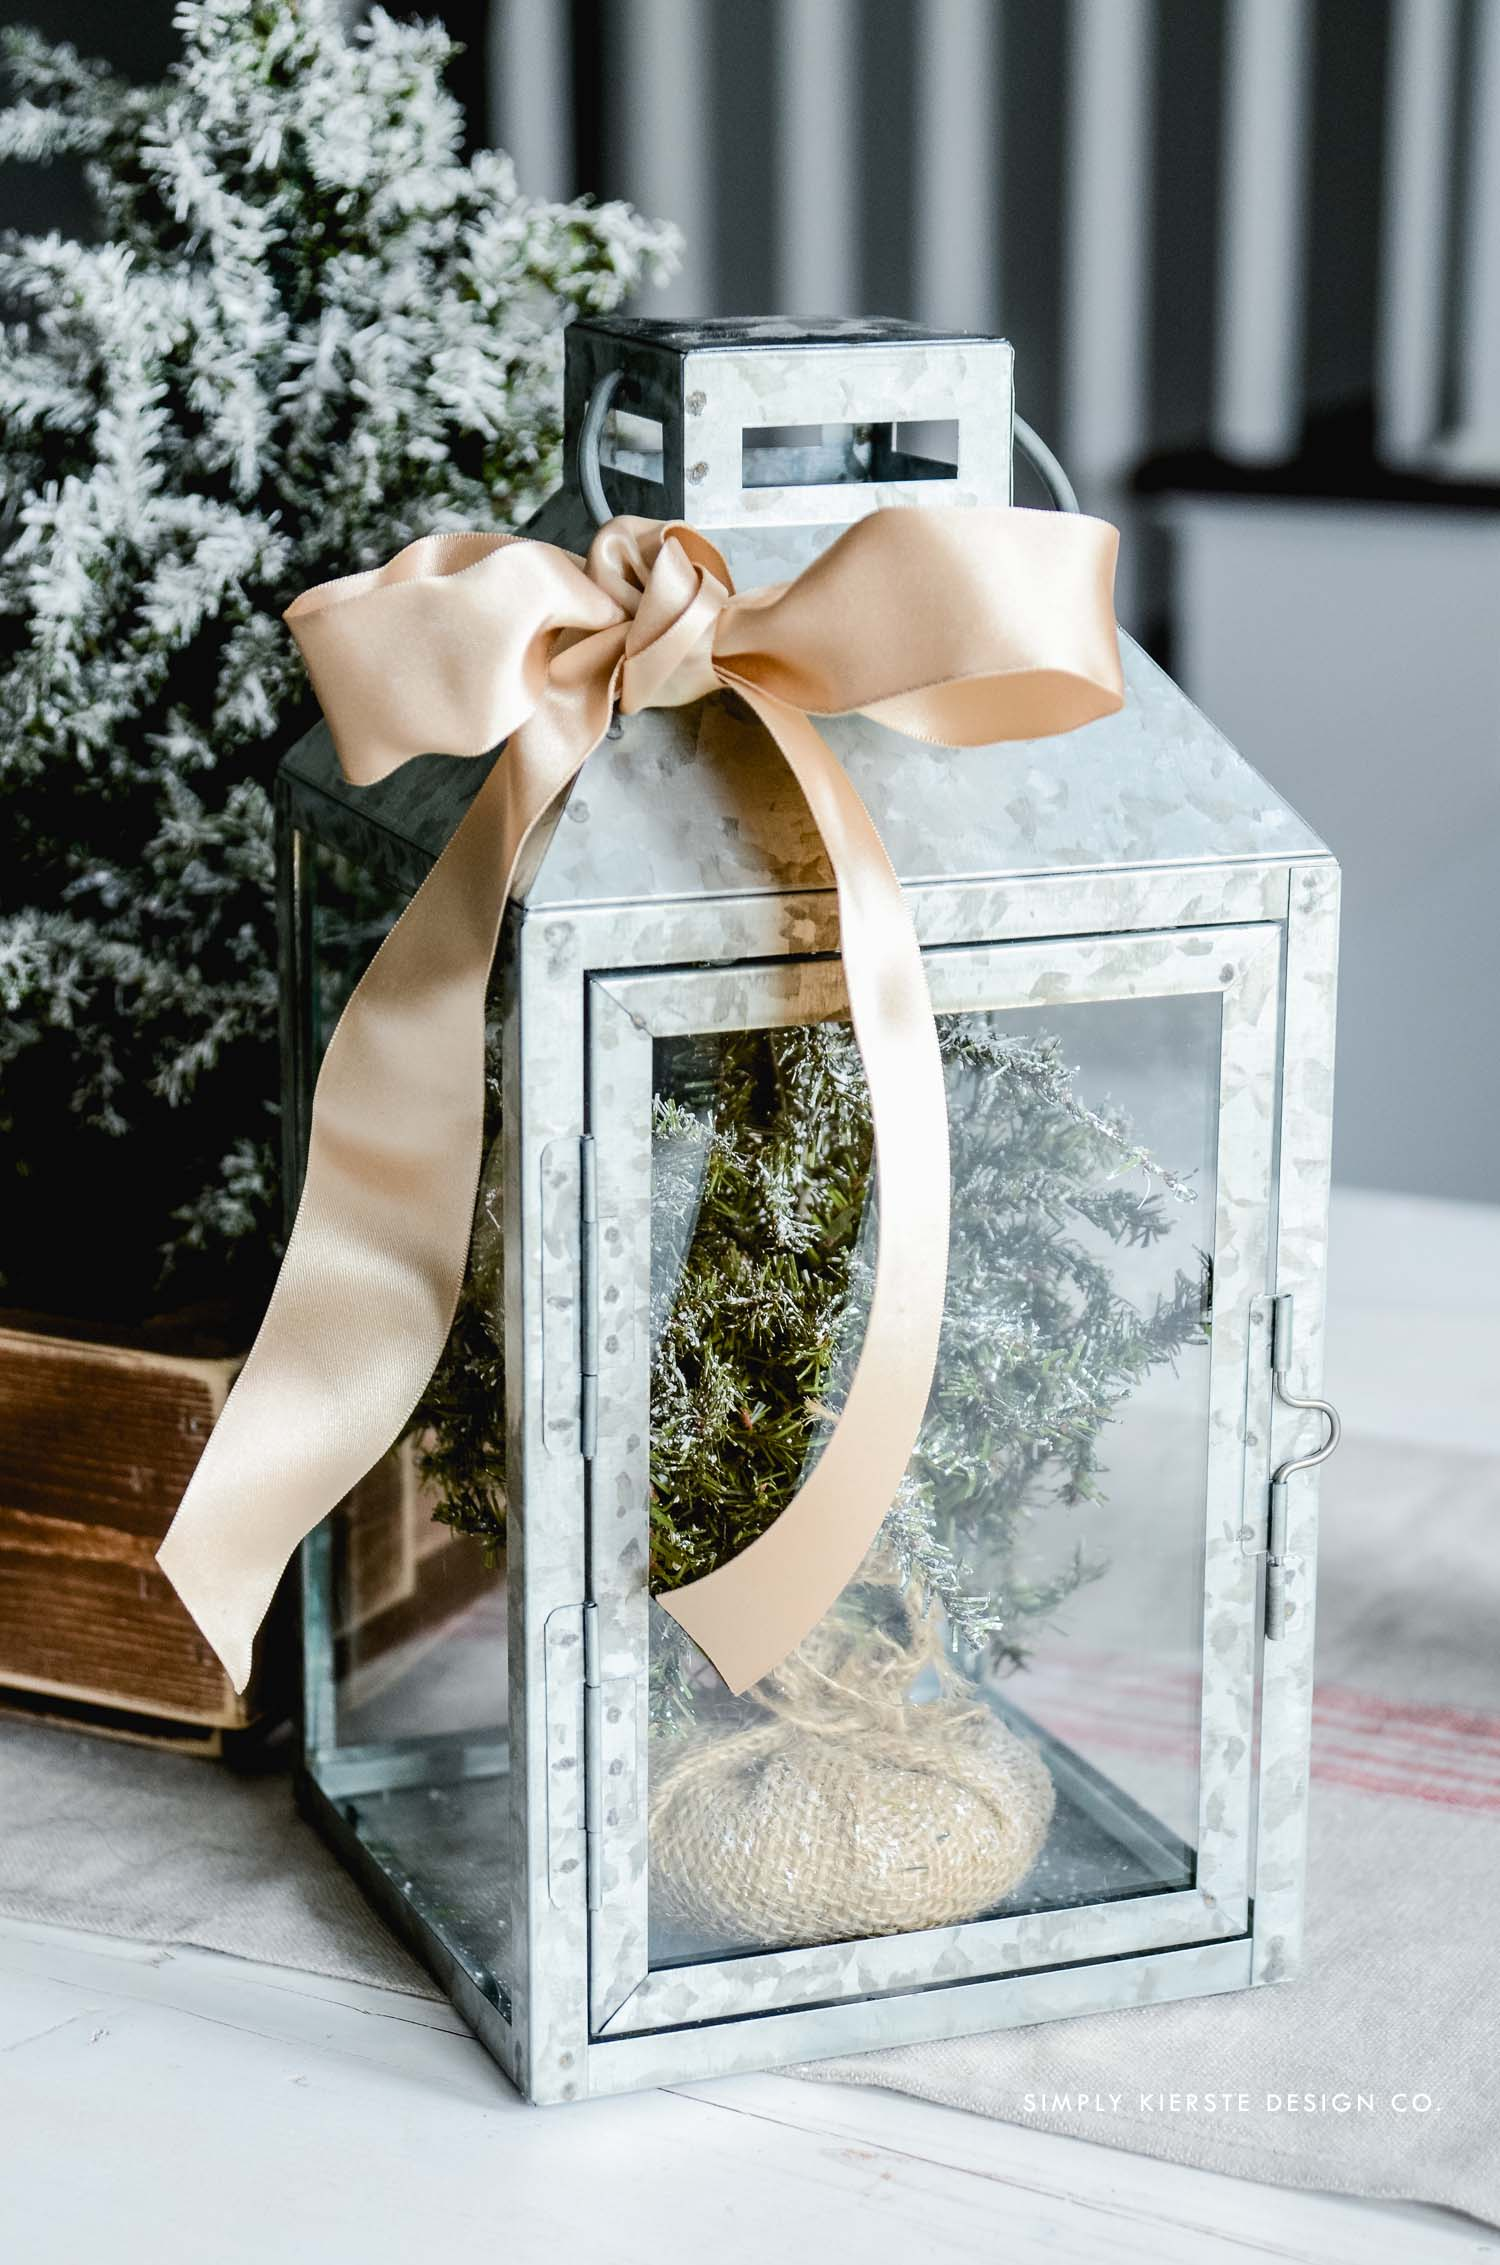 Affordable Gift Ideas | Galvanized Lantern | oldsaltfarm.com